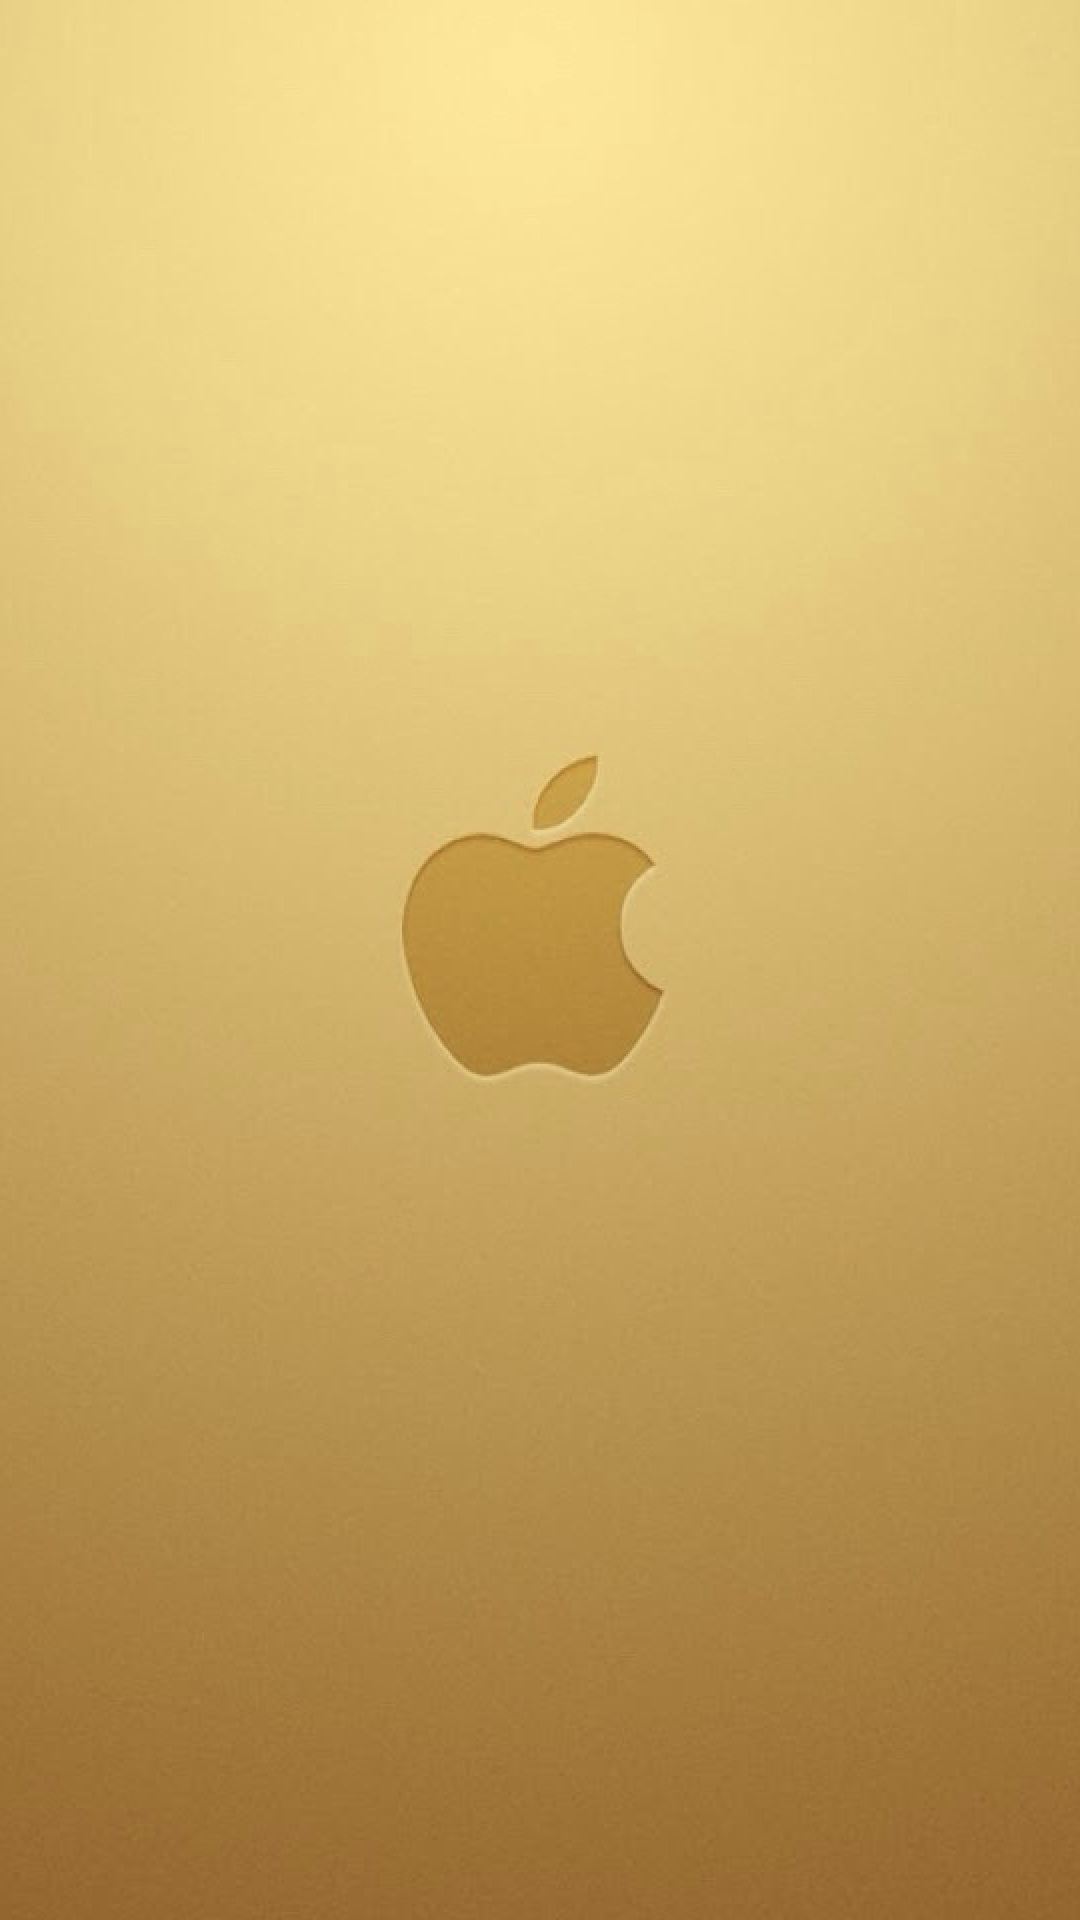 Stay Gold iPhone Wallpaper